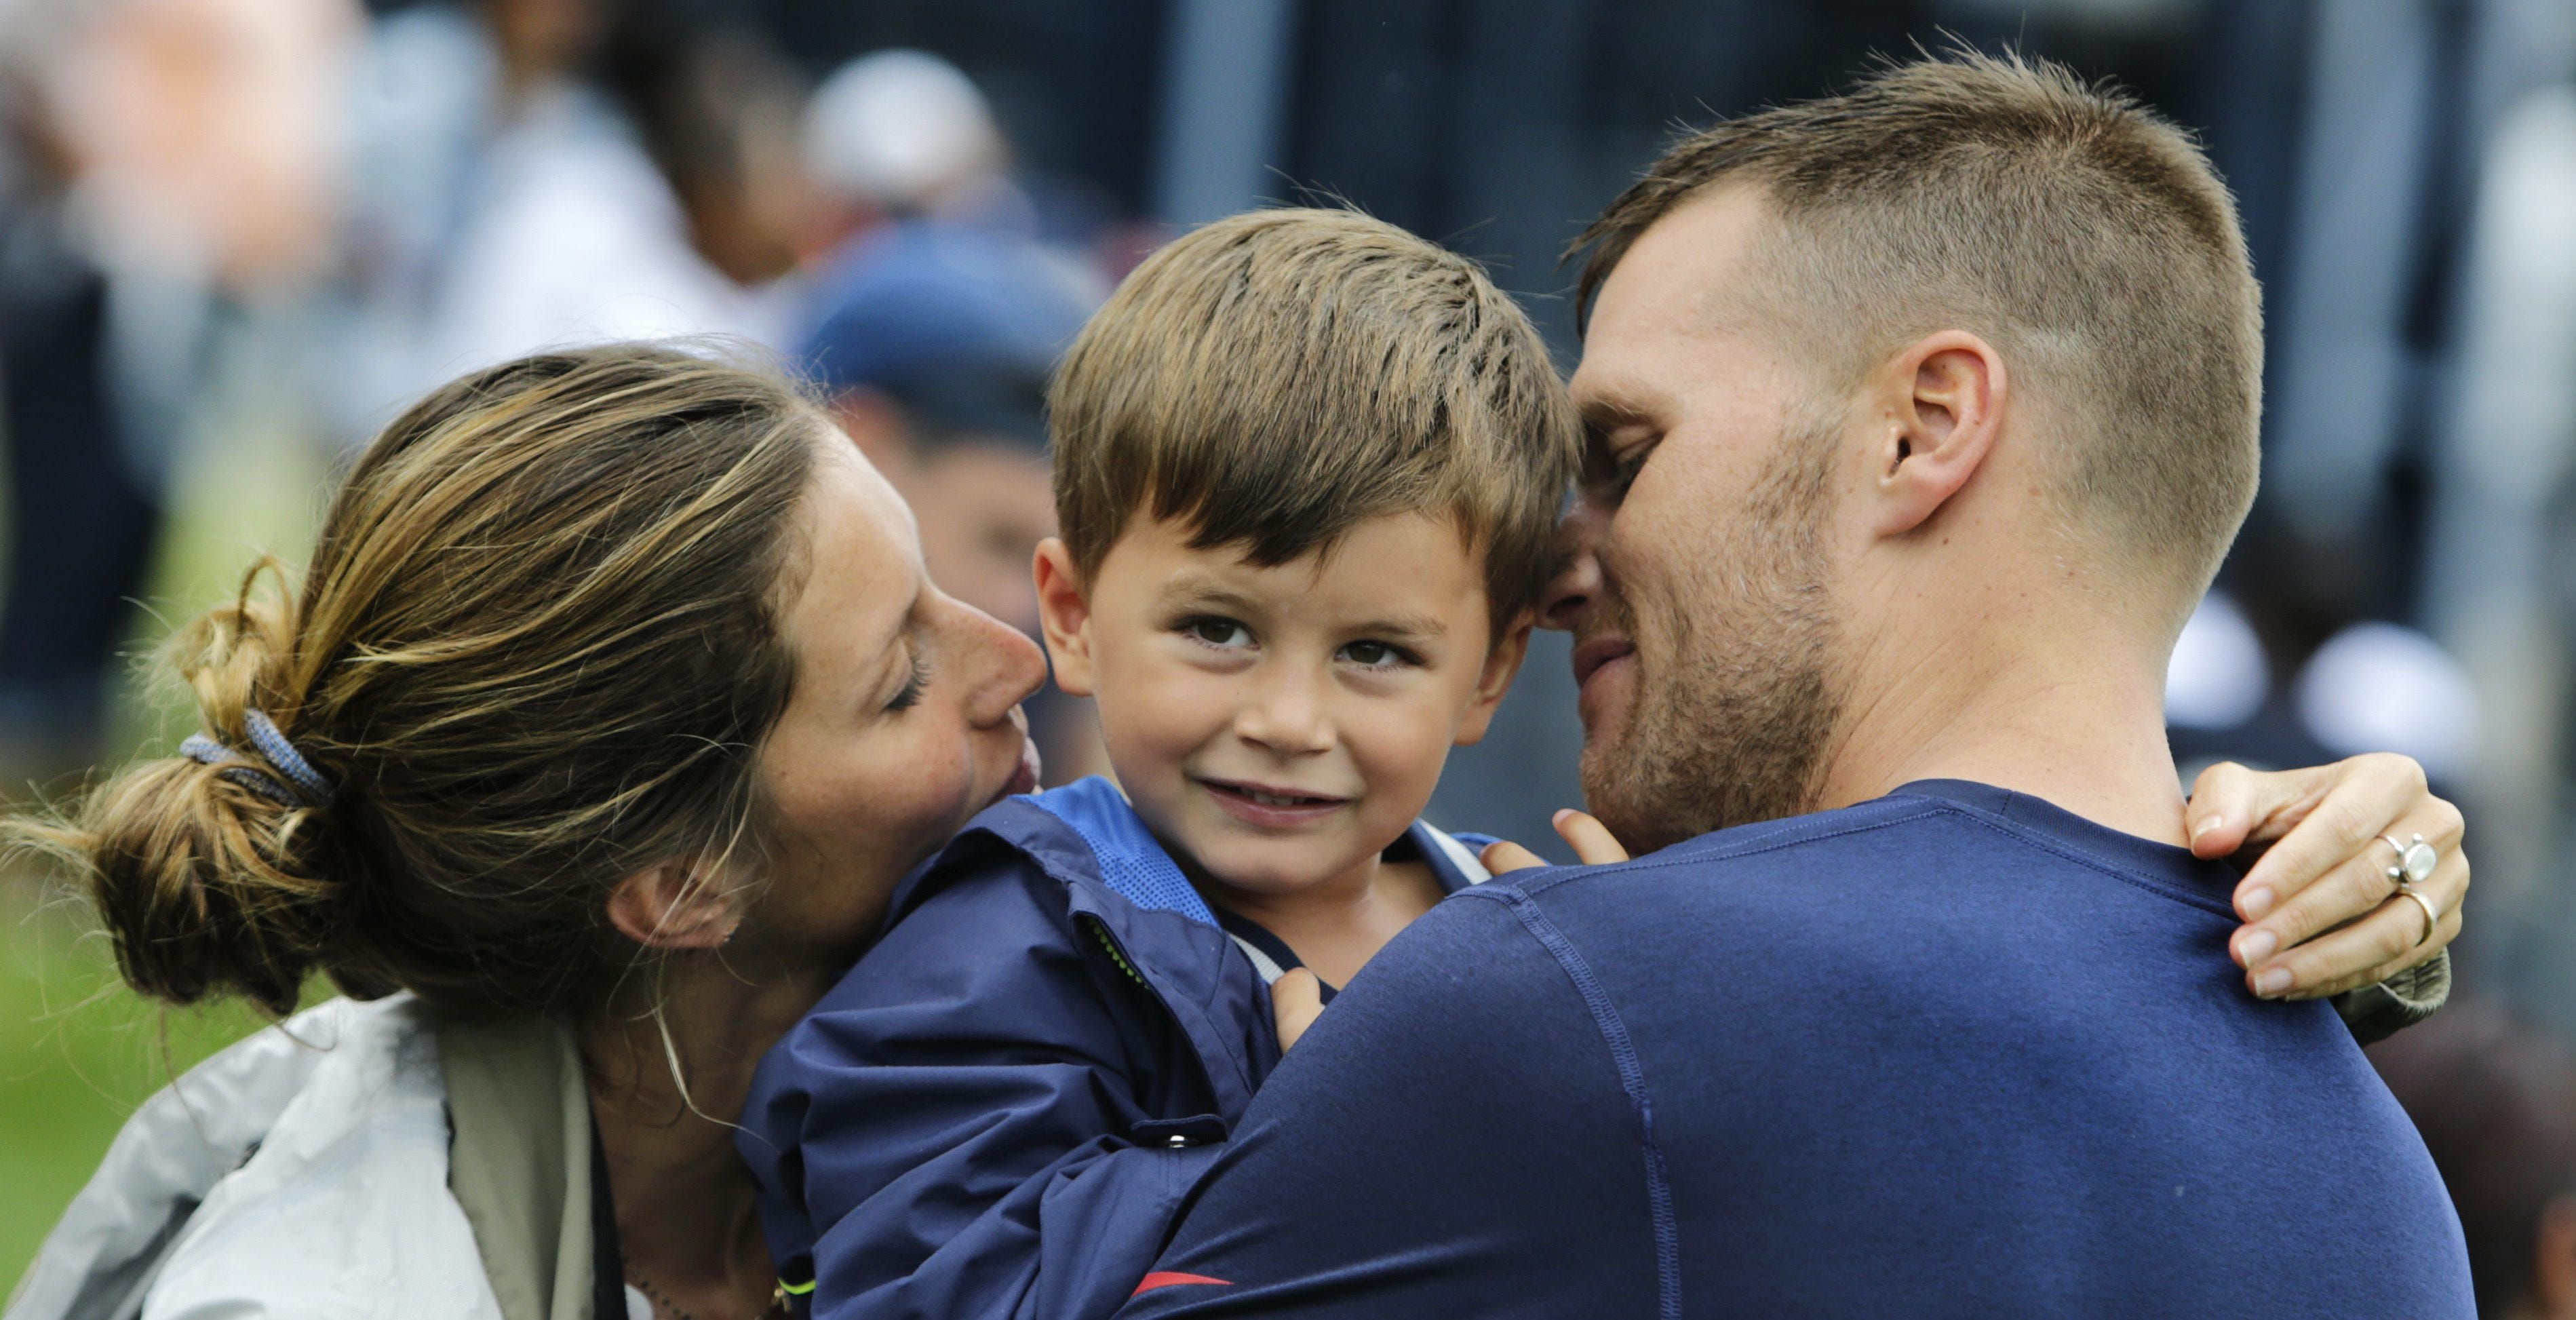 Tom Brady says 'it was hard' when his son wasn't into sports: 'What do you mean? He's a boy' thumbnail